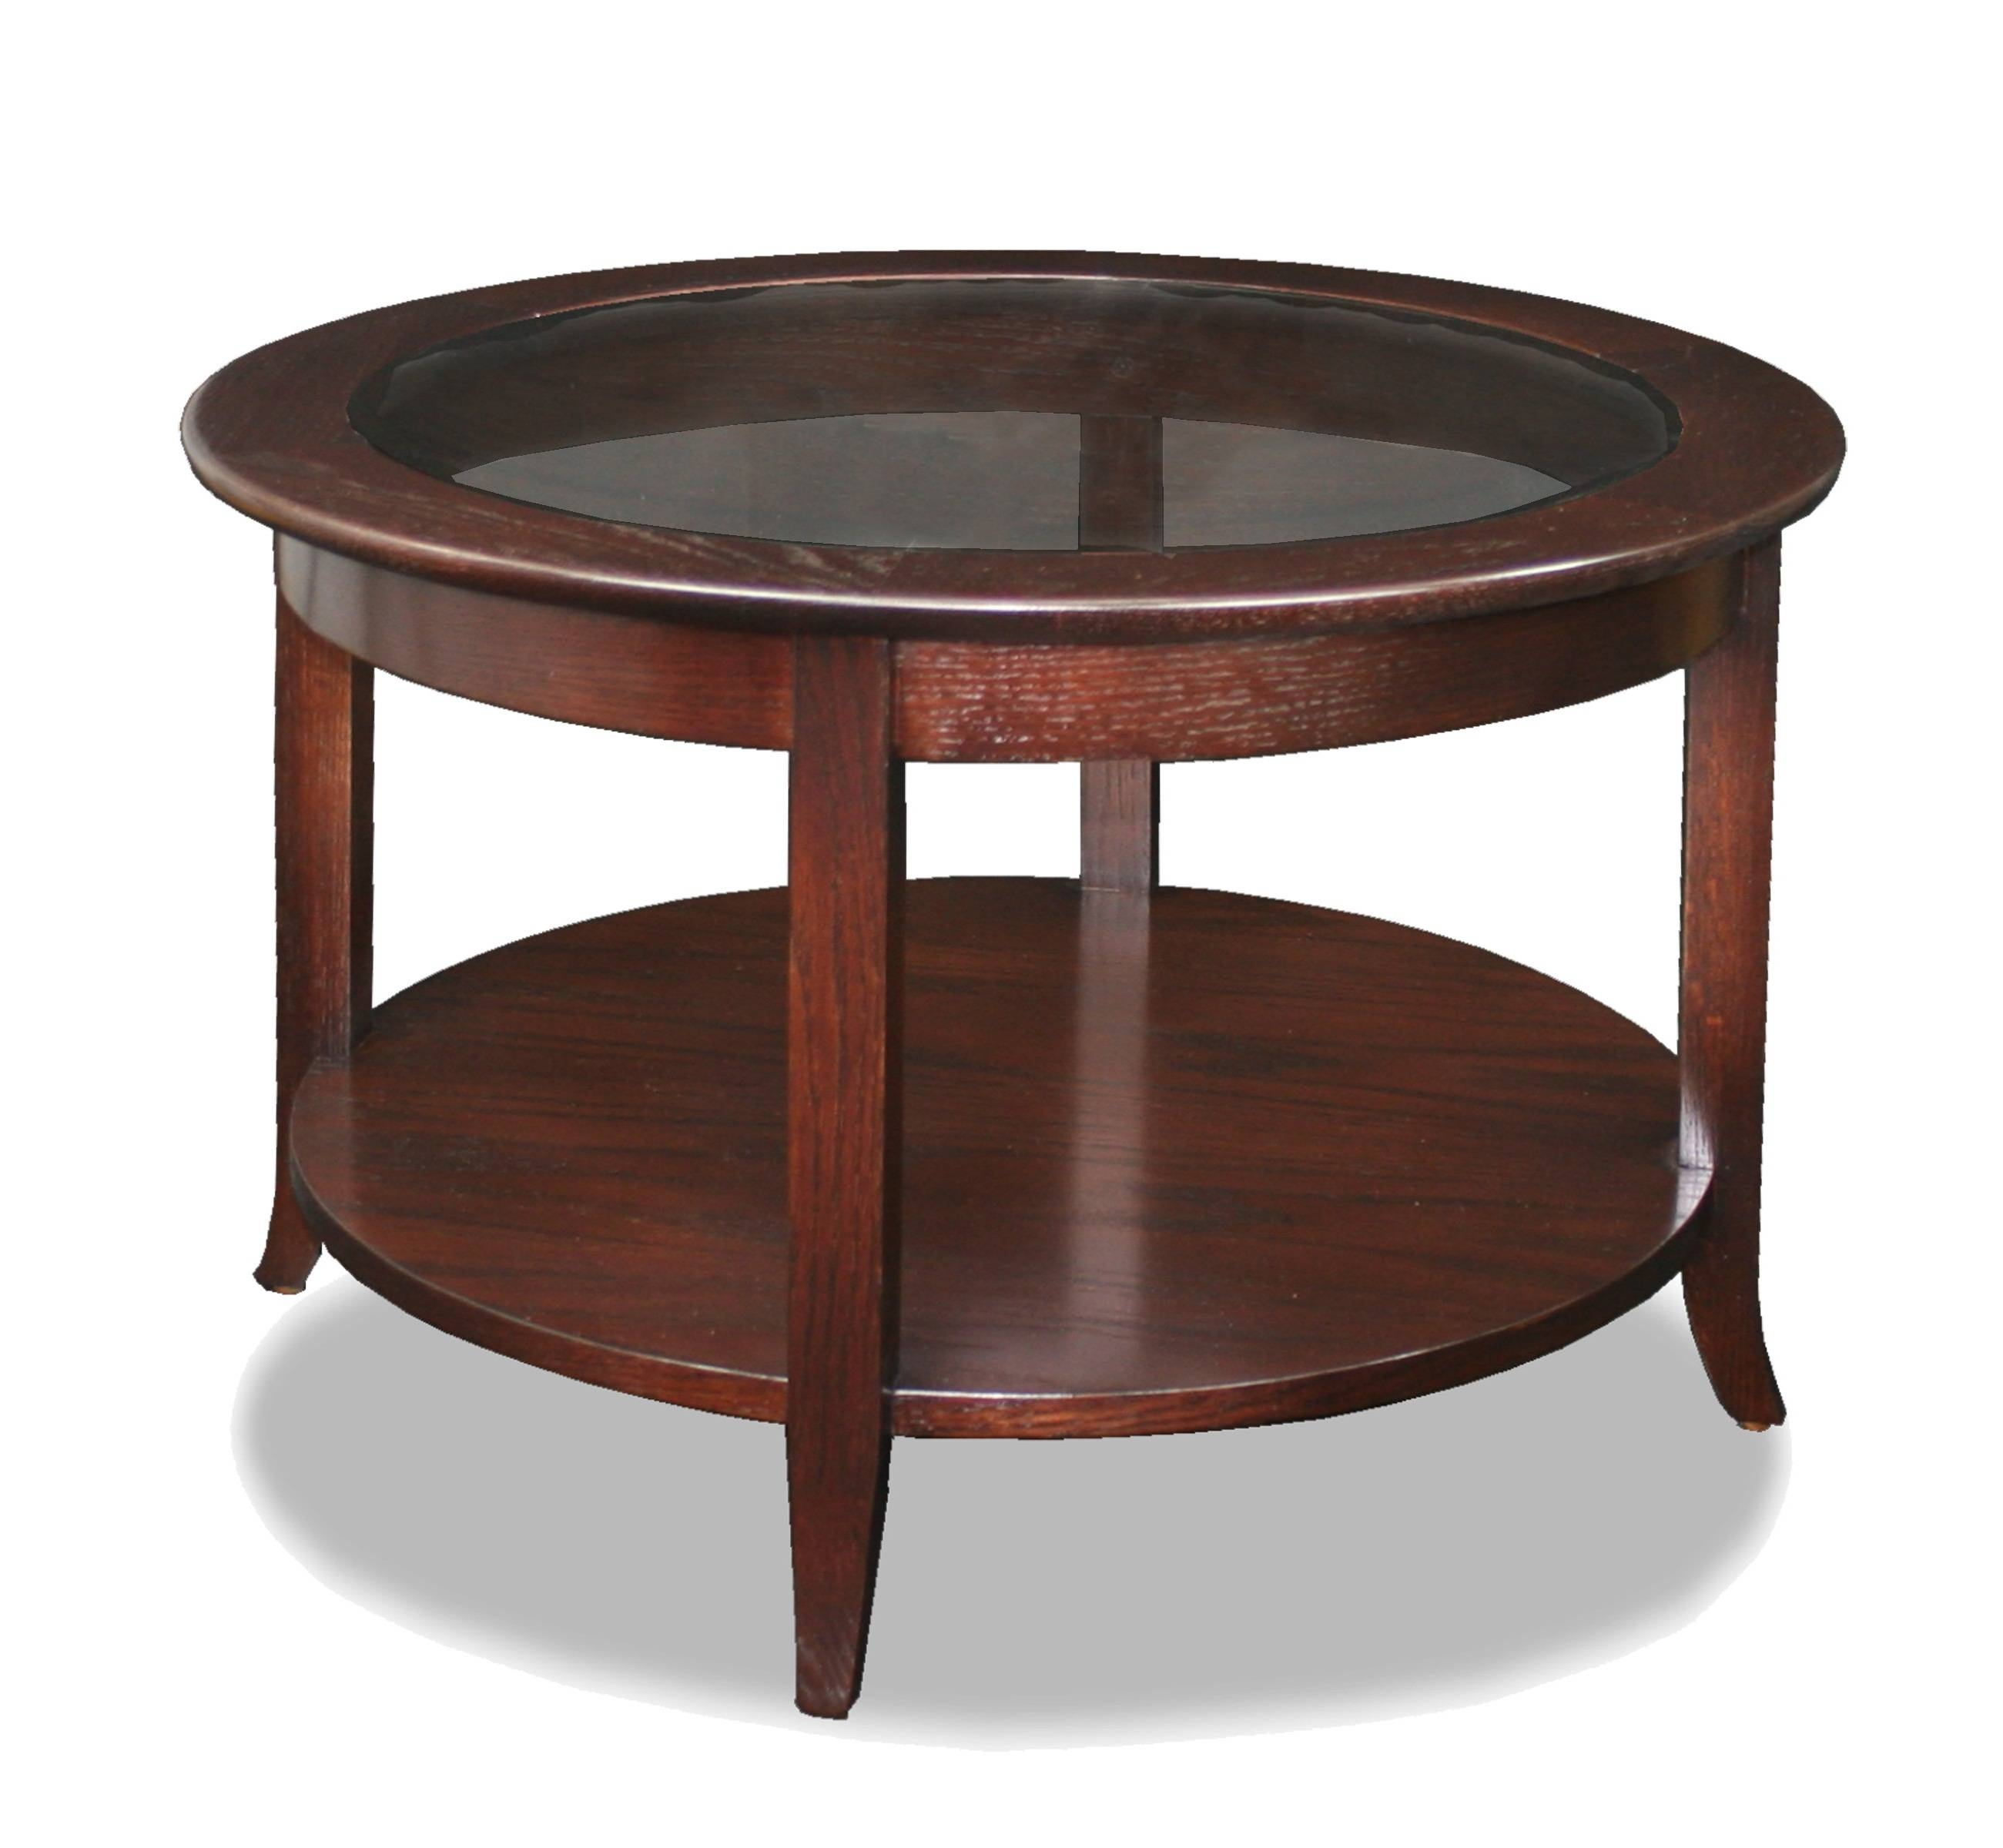 Antique Round End Table. Vintage 1970S Round End Table. Carved regarding Round Oak Coffee Tables (Image 3 of 30)